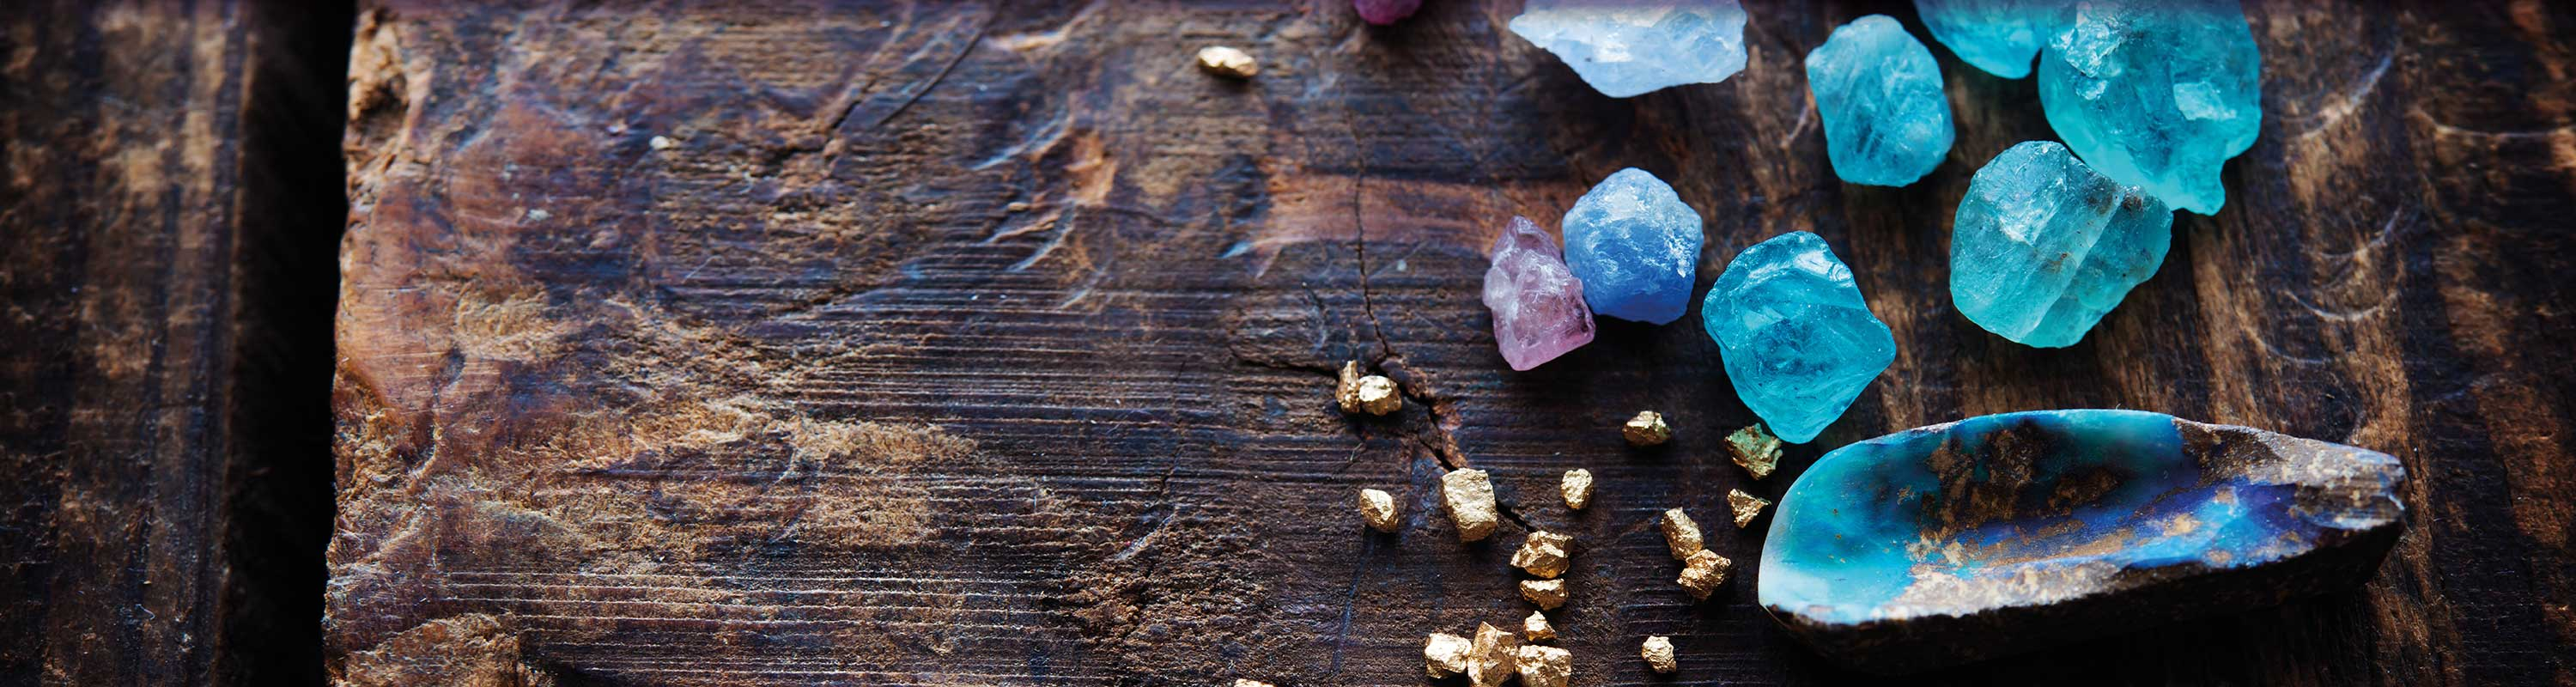 Minerals & gemstones keeping their power and energy for you.